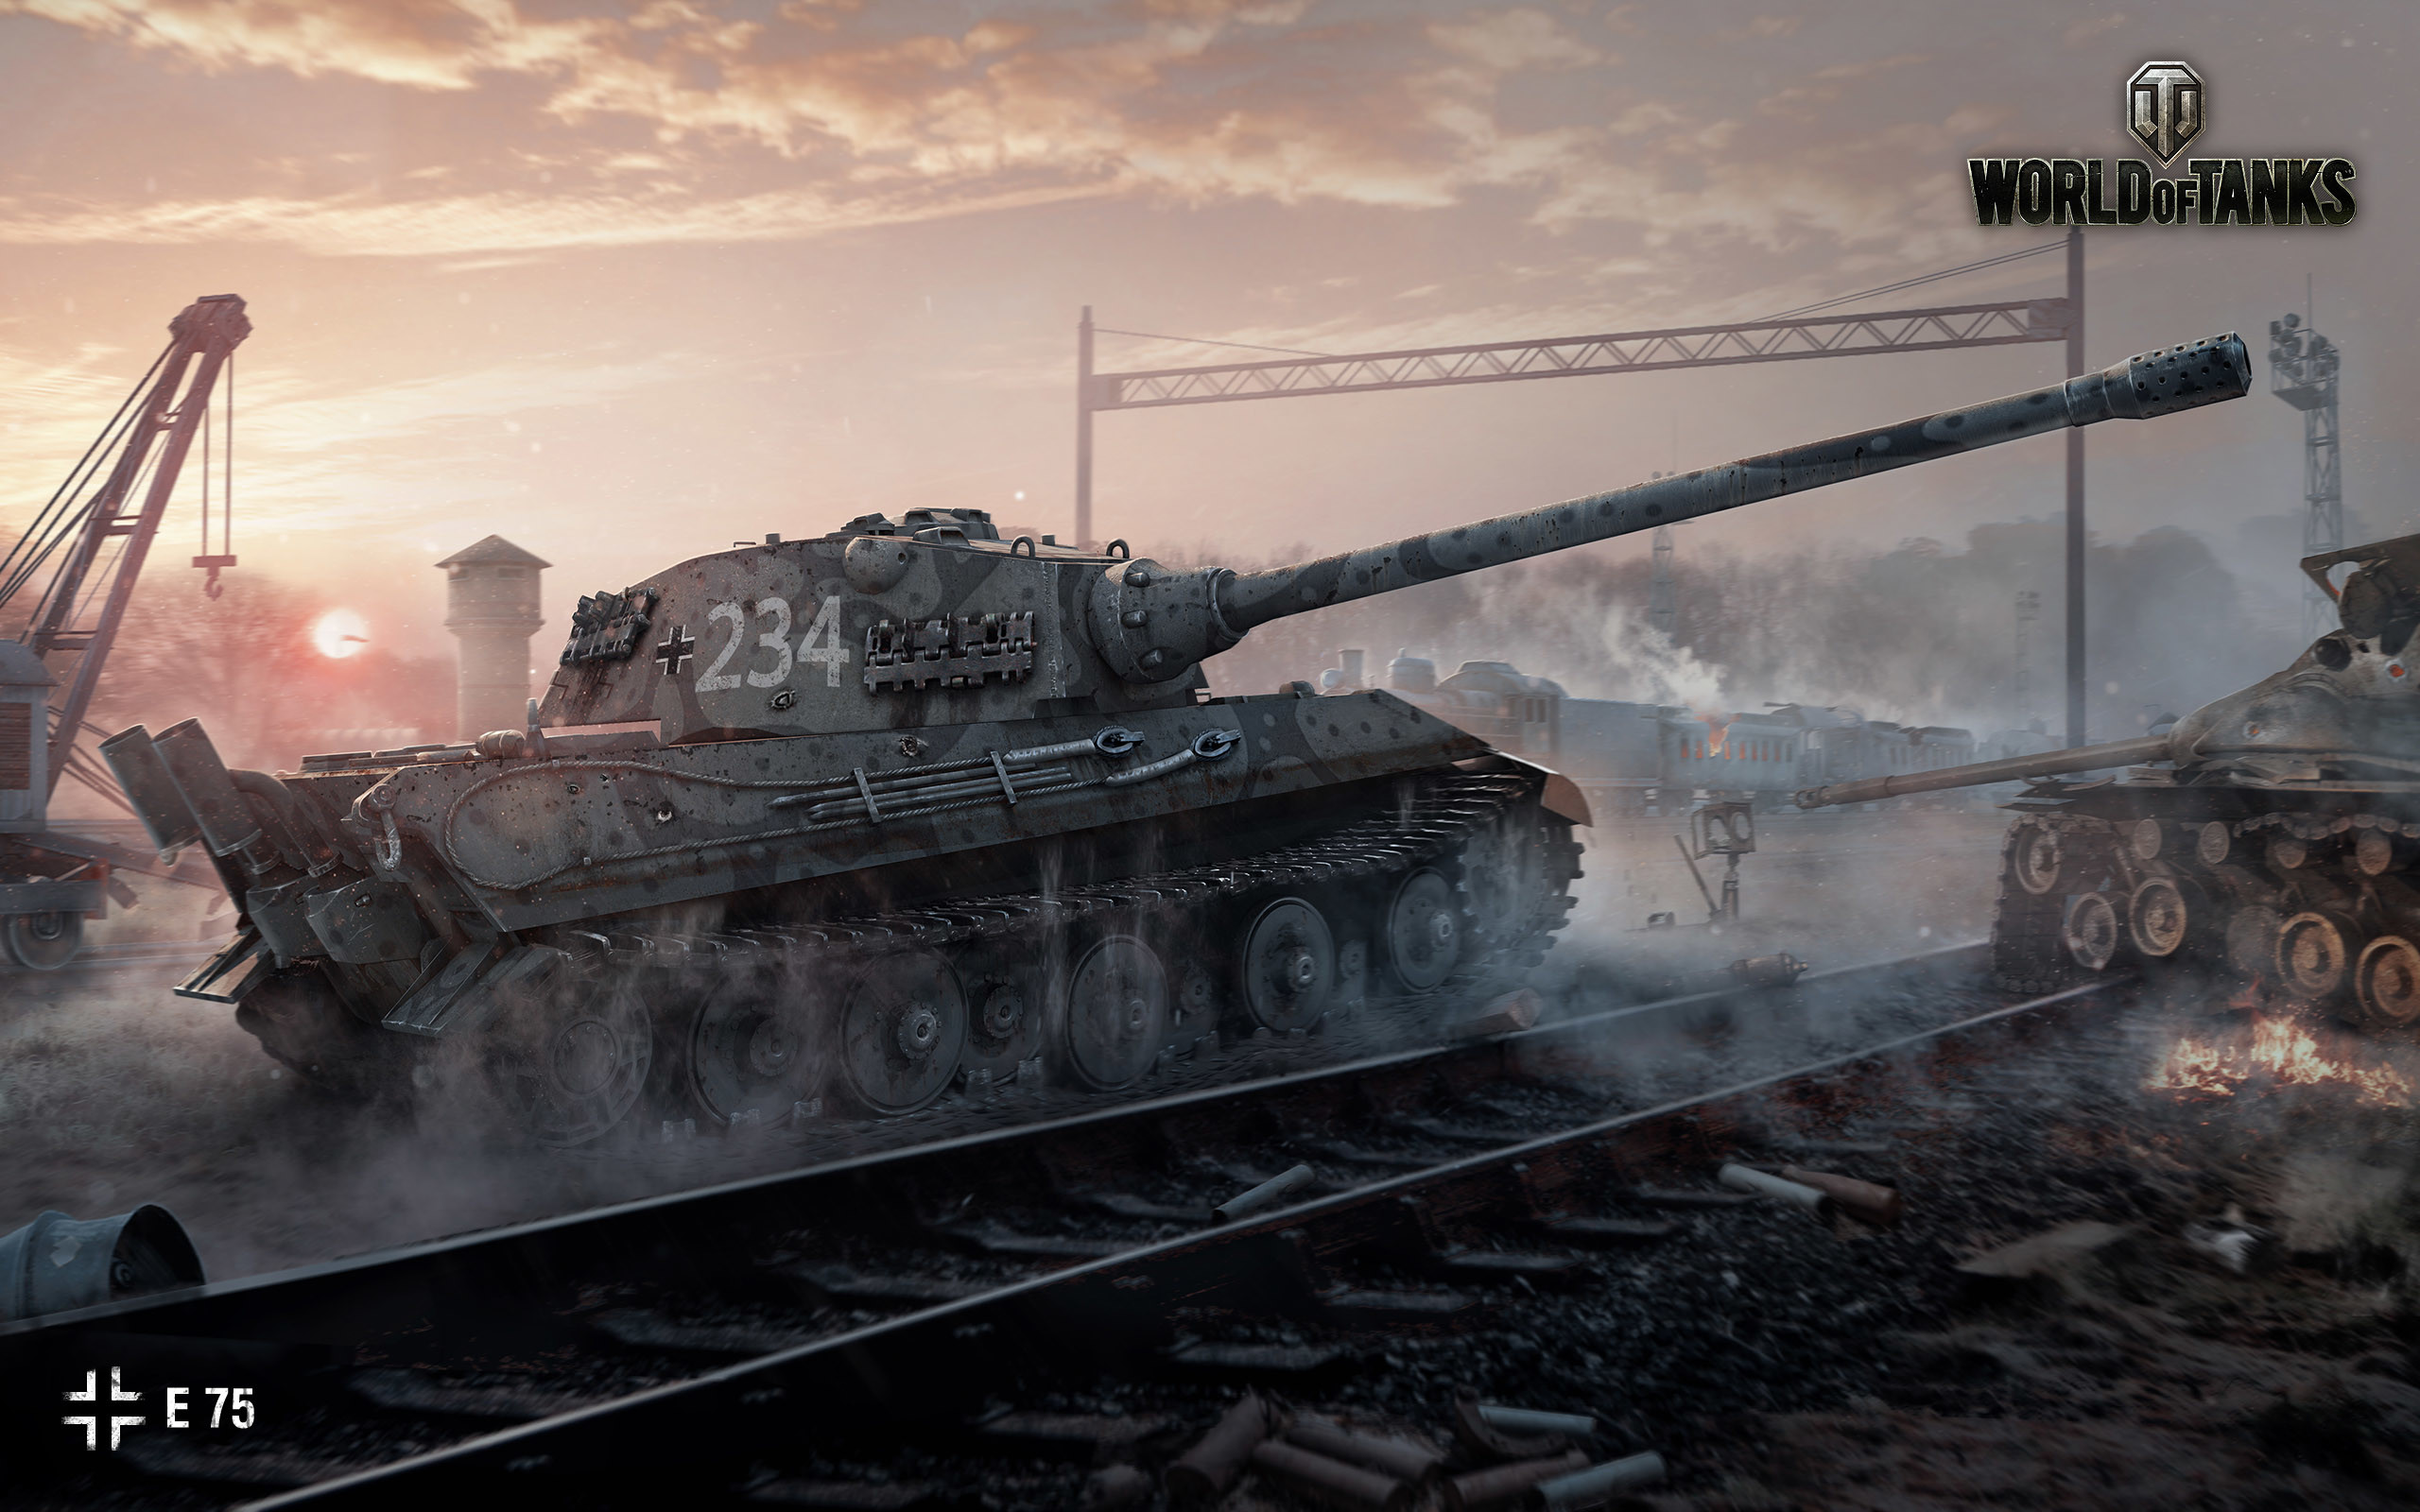 Res: 2560x1600, World Of Tanks Wallpapers High Quality On Wallpaper Hd 2560 x 1600 px 1.2  MB 1080p